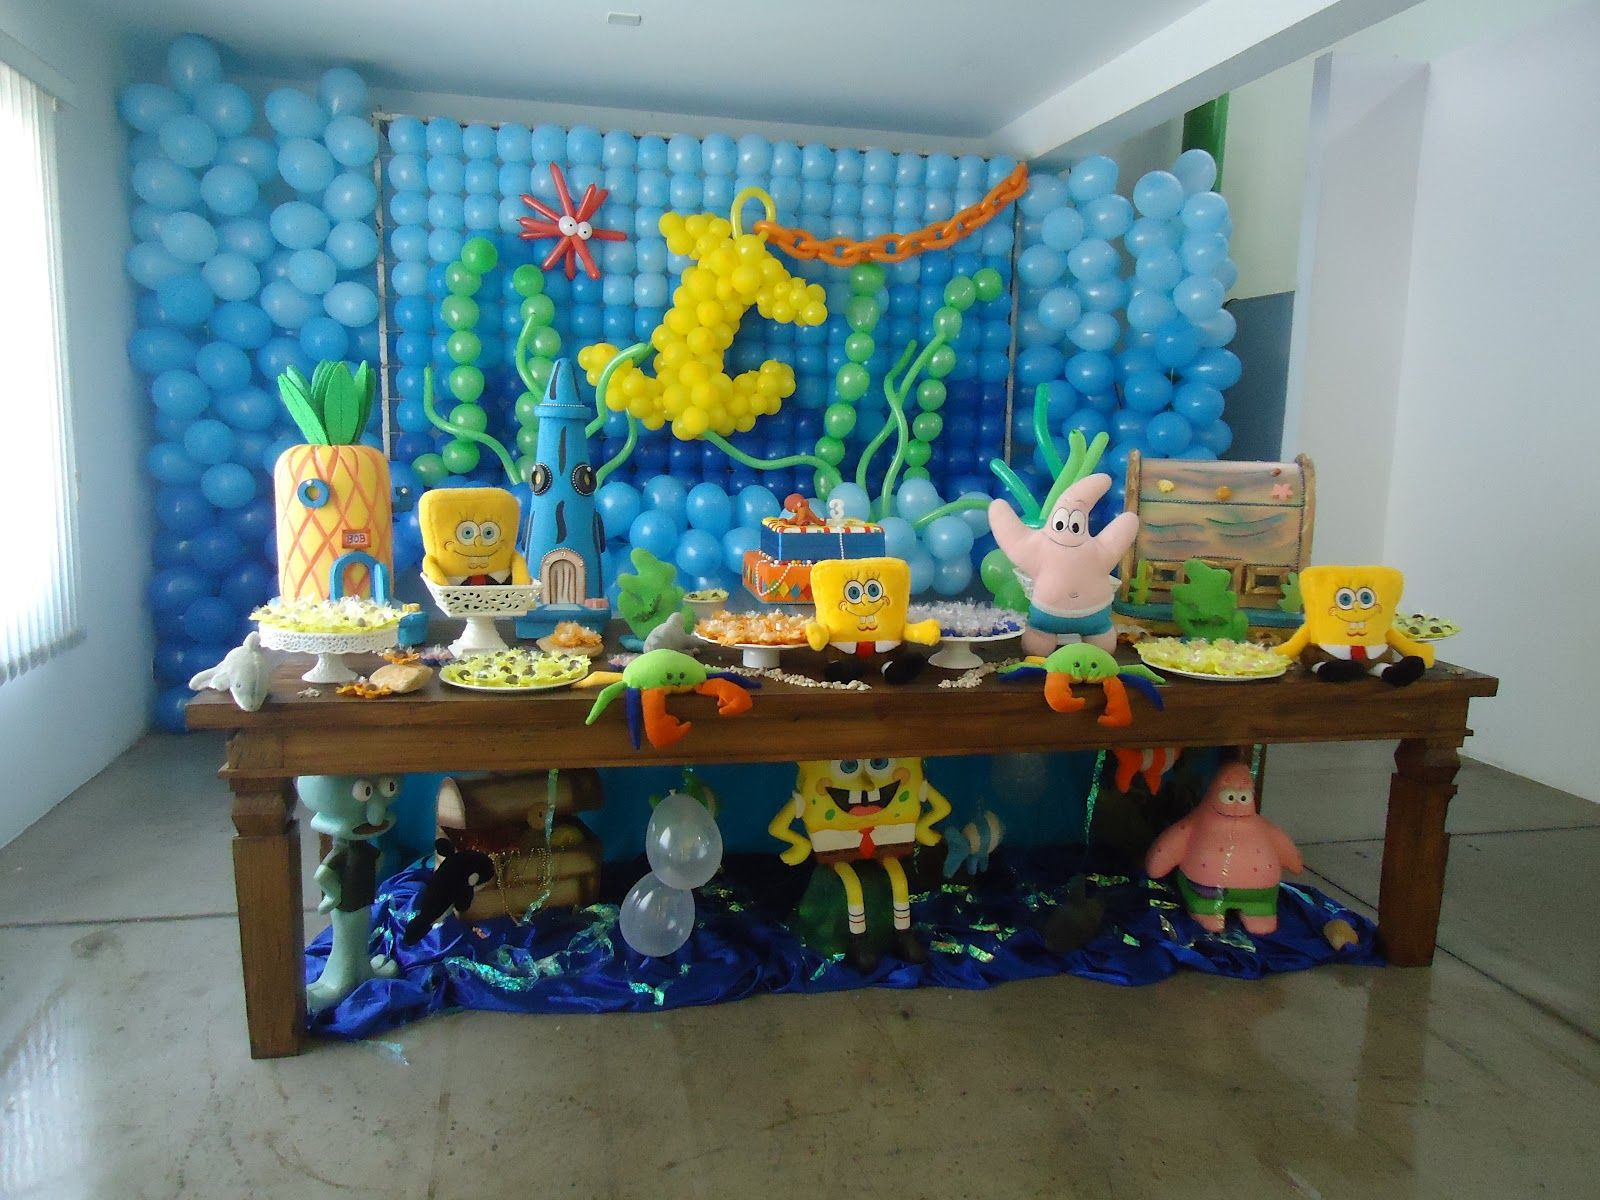 Best ideas about Spongebob Birthday Decorations . Save or Pin Spongebob party ballons Now.